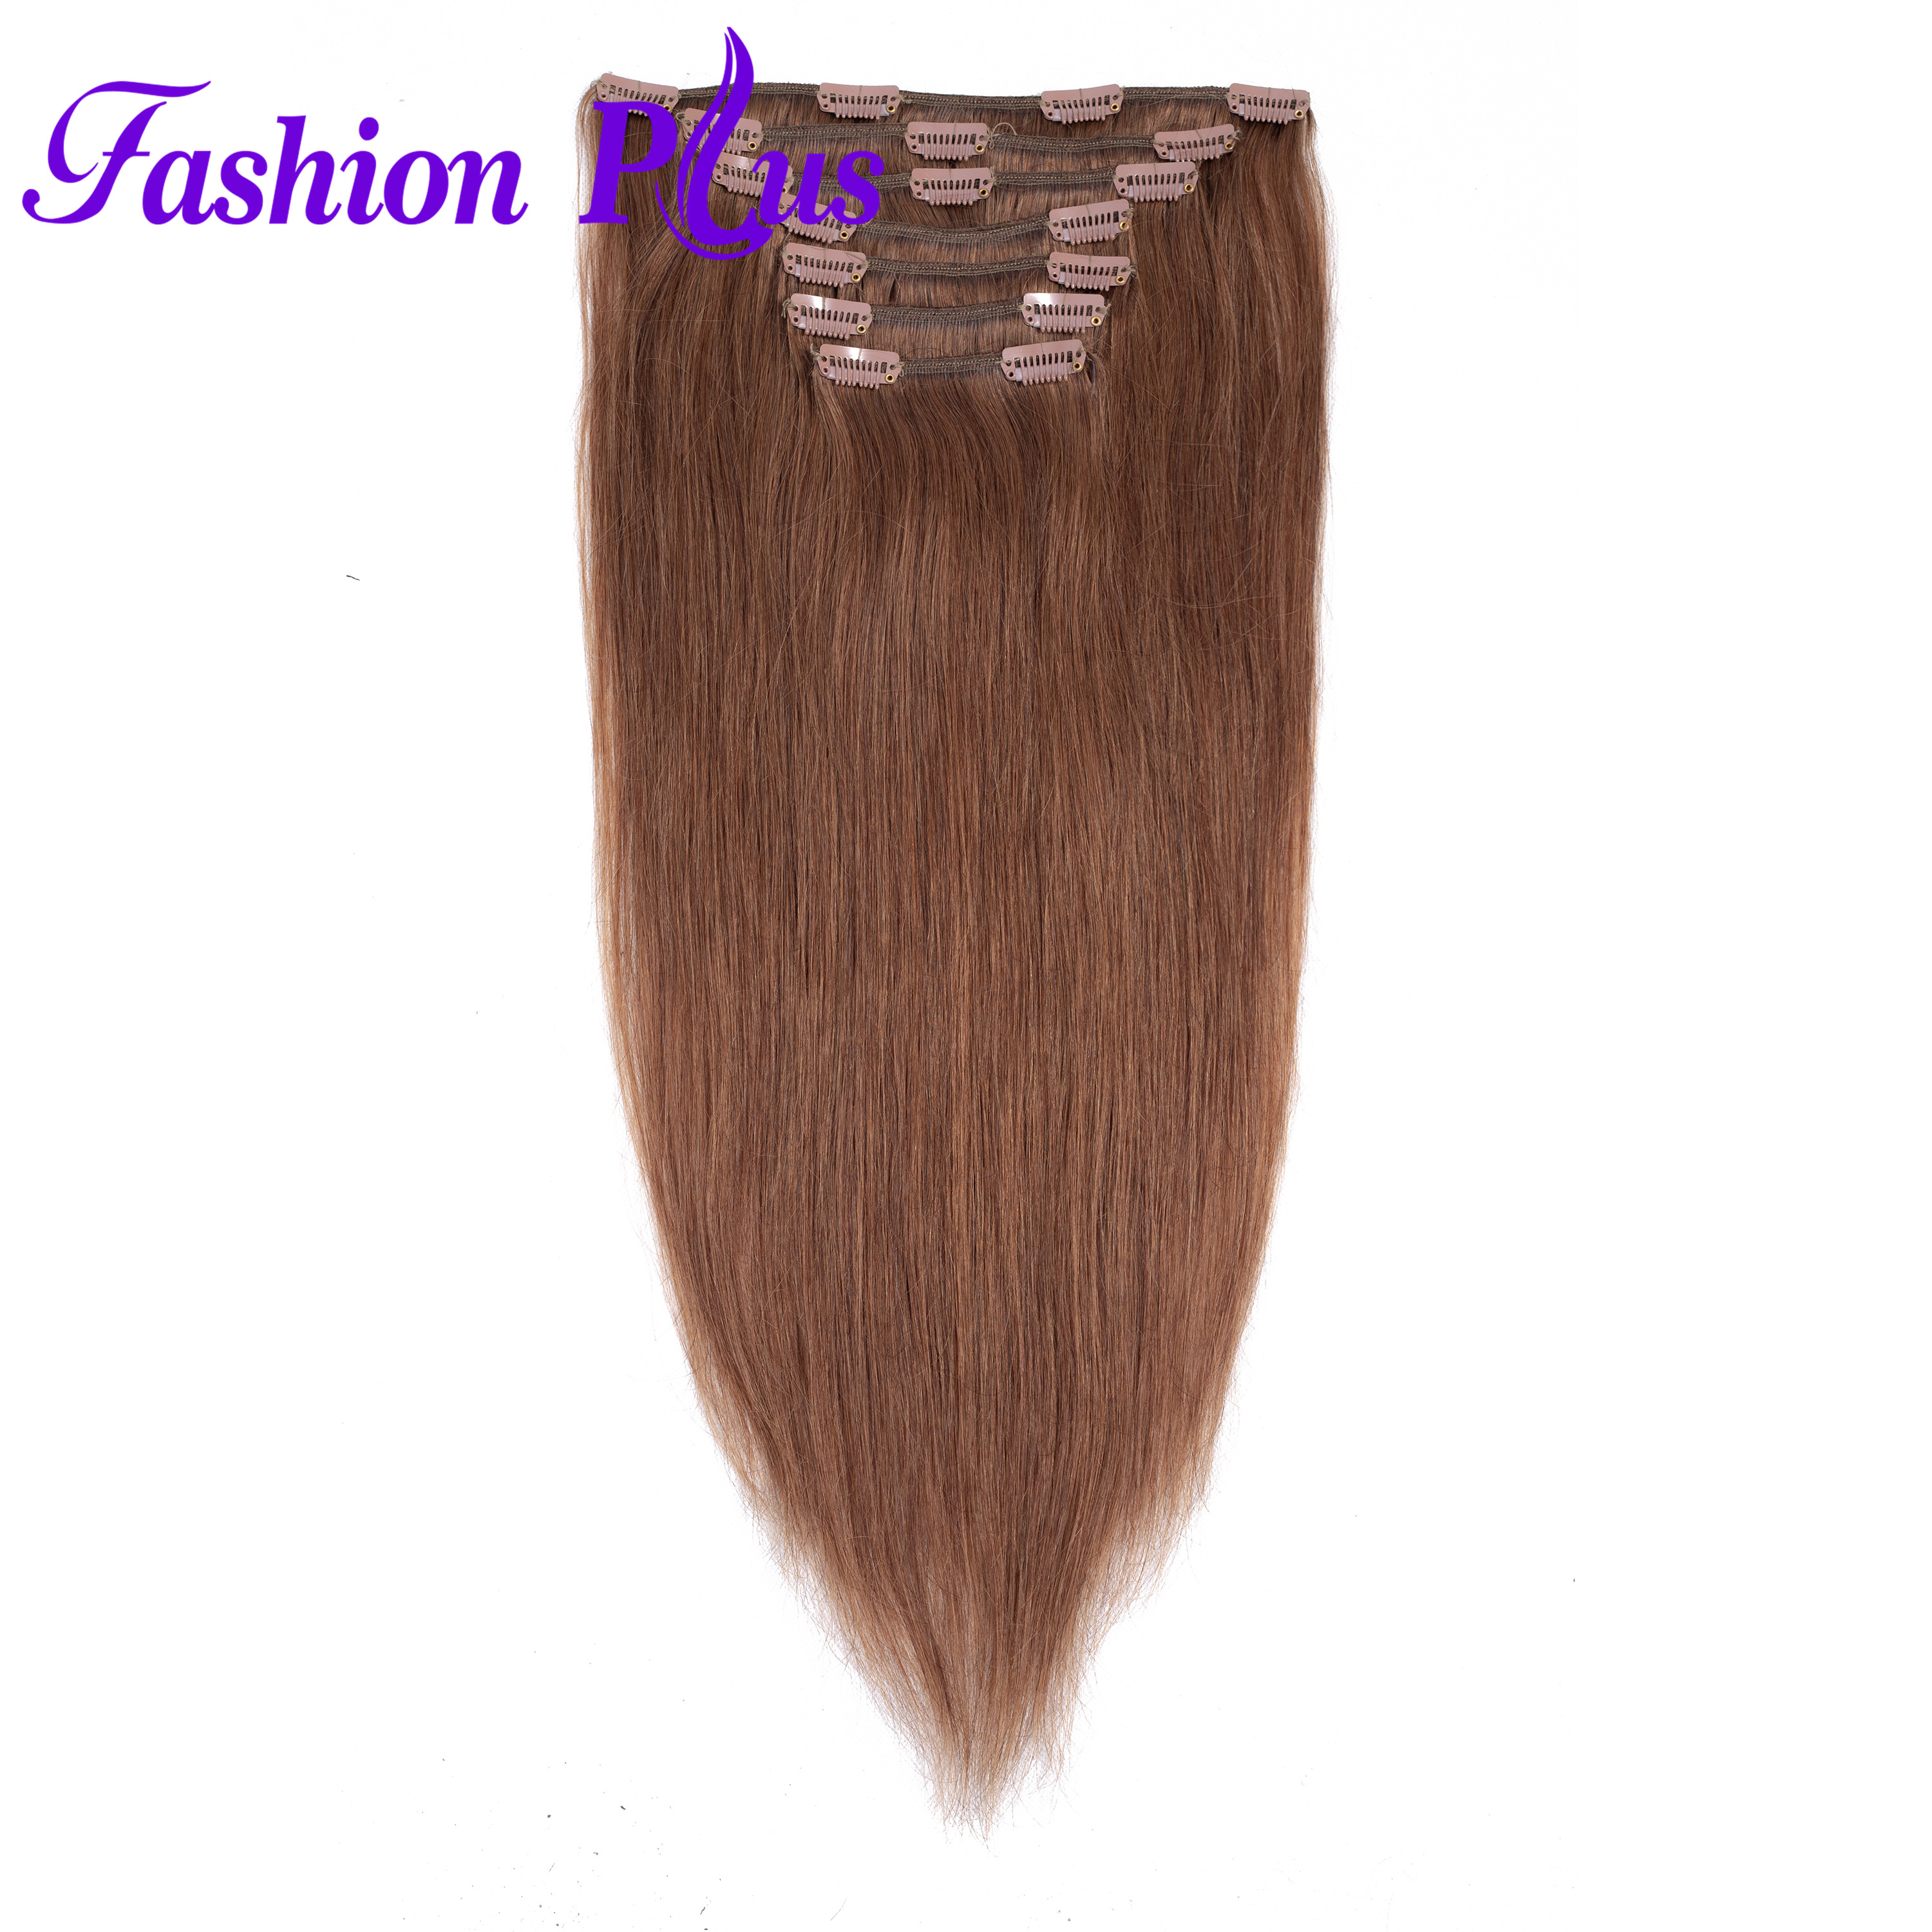 Remy Human Hair Clip In Extensions 16-22 Inch Machine Made Brazilian Straight Hair Clip Ins Extensions 7 Pieces/Set 120G